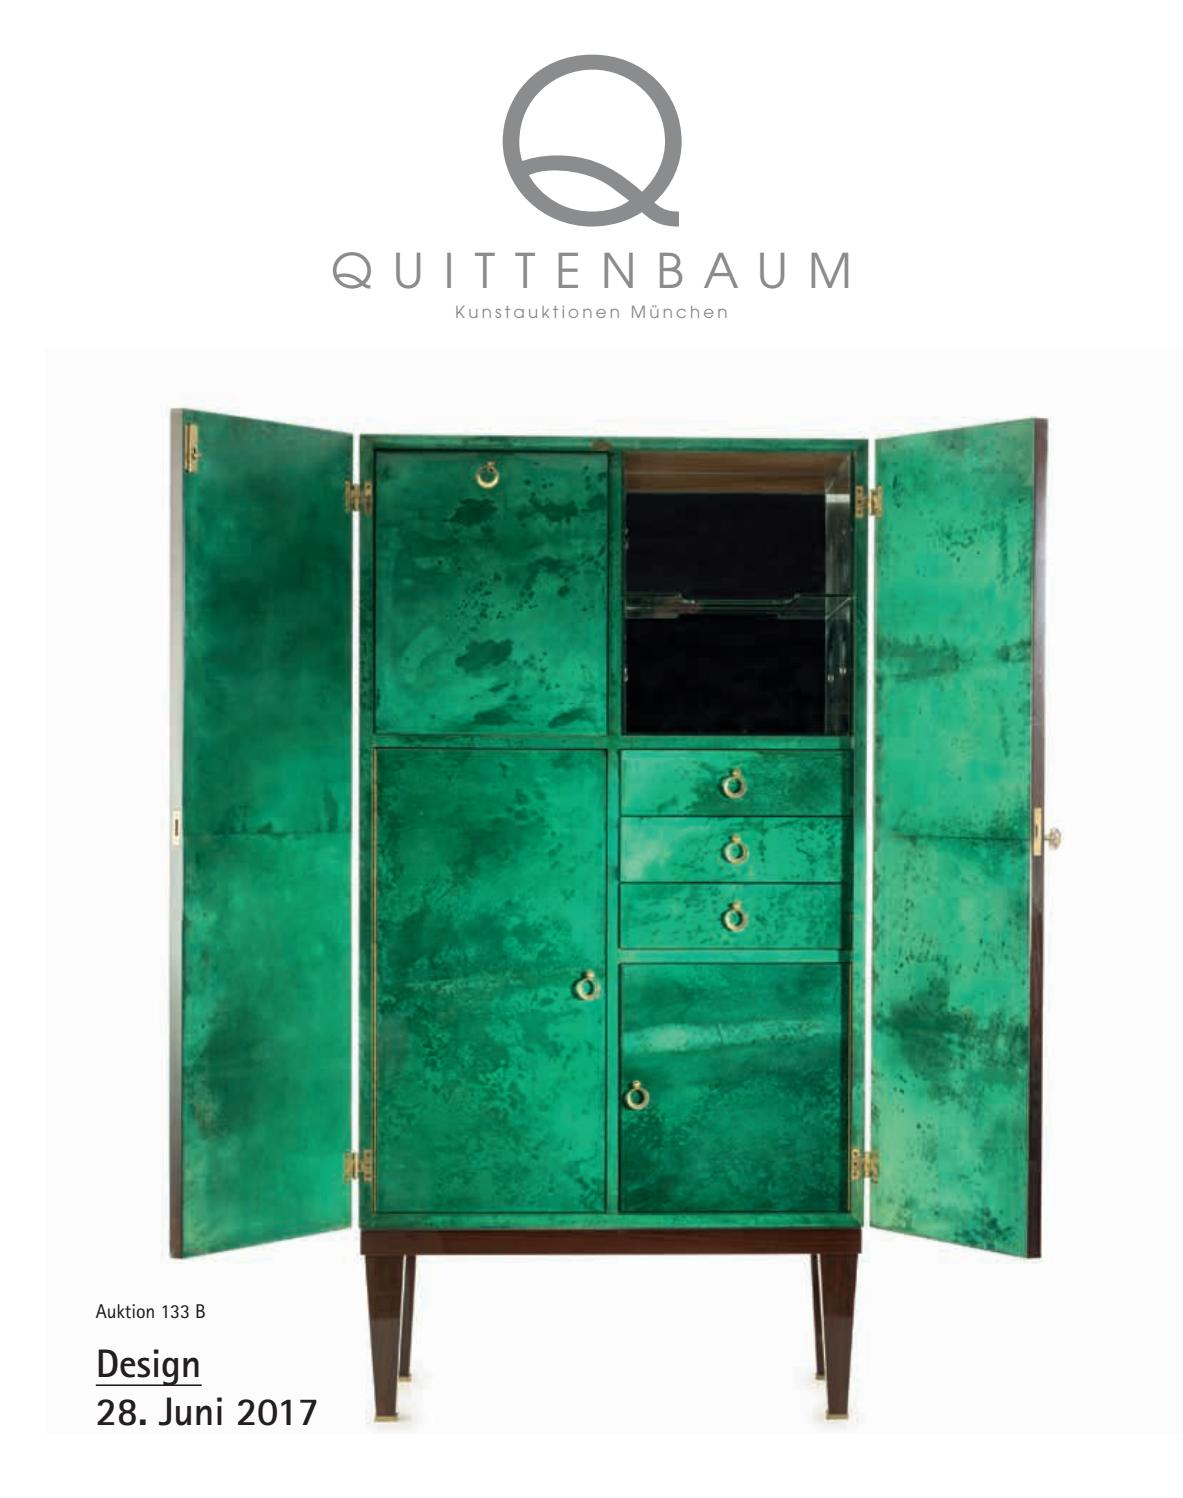 Vitrine Stahl Auction 107a Catalogue Quittenbaum Art Auctions By Quittenbaum